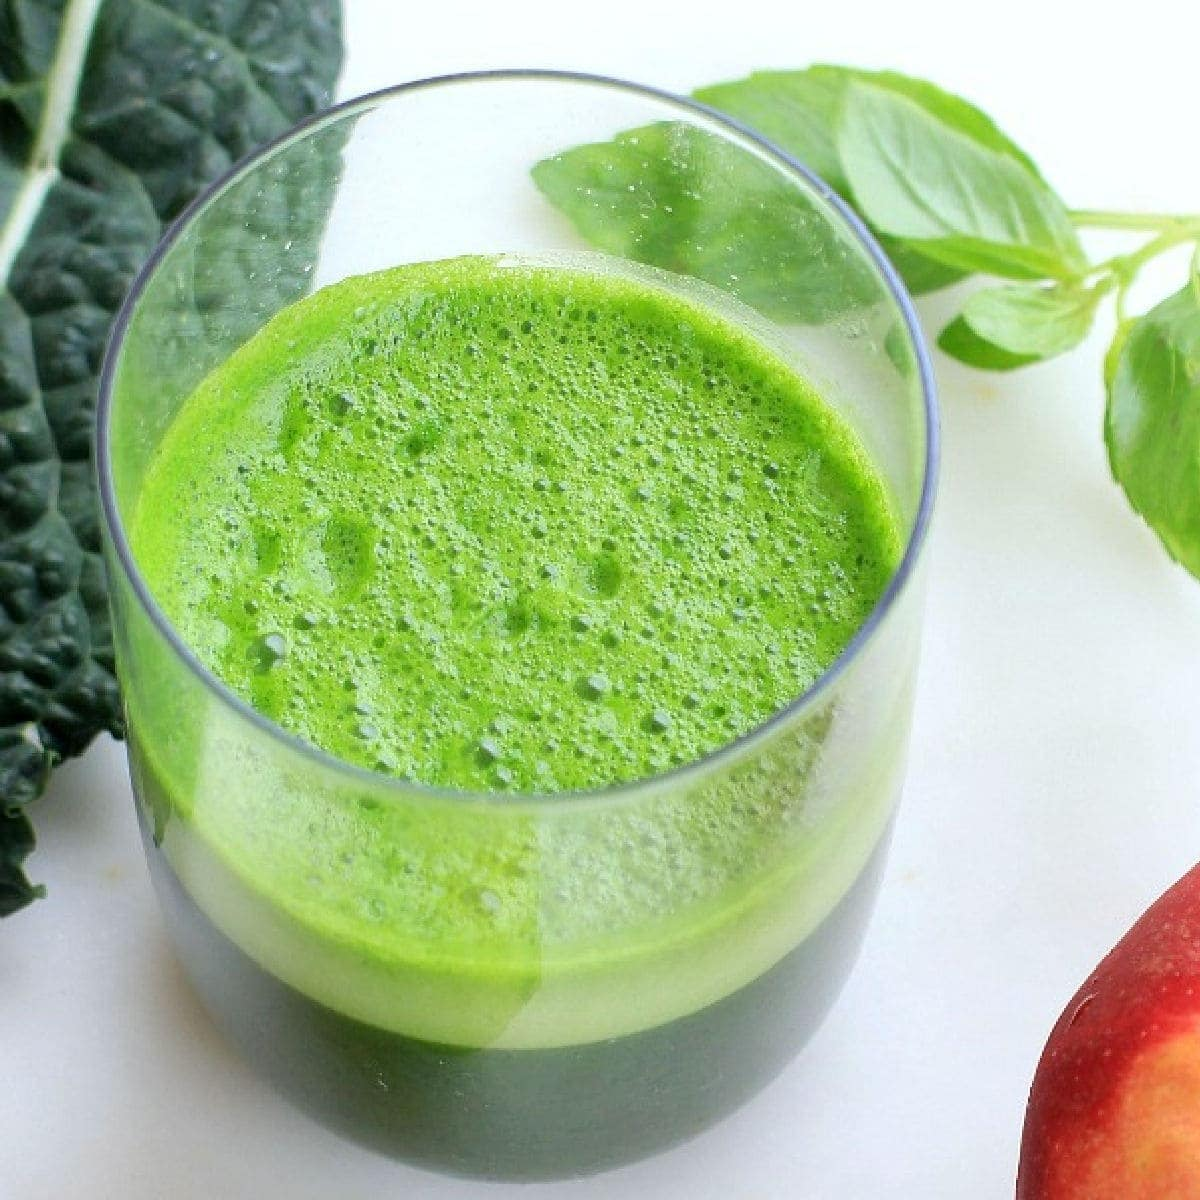 Green juice in a glass with kale and a red apple in the background.